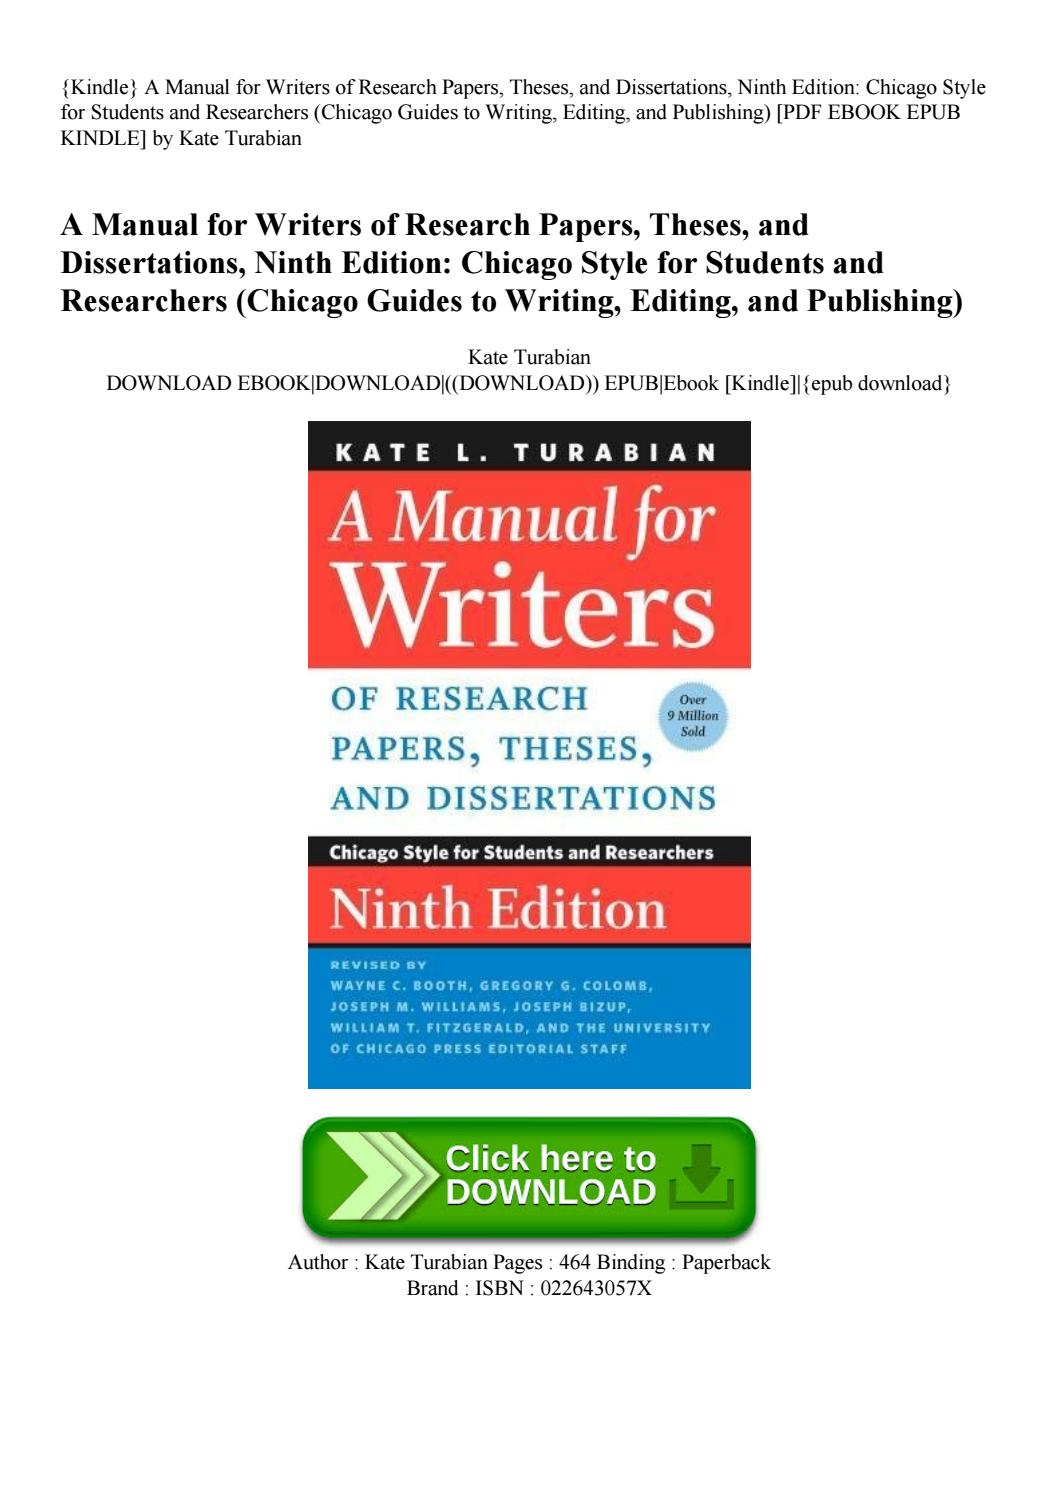 012 Research Paper Manual For Writers Of Papers Theses And Dissertations Page 1 Magnificent A Amazon 9th Edition Pdf 8th 13 Full